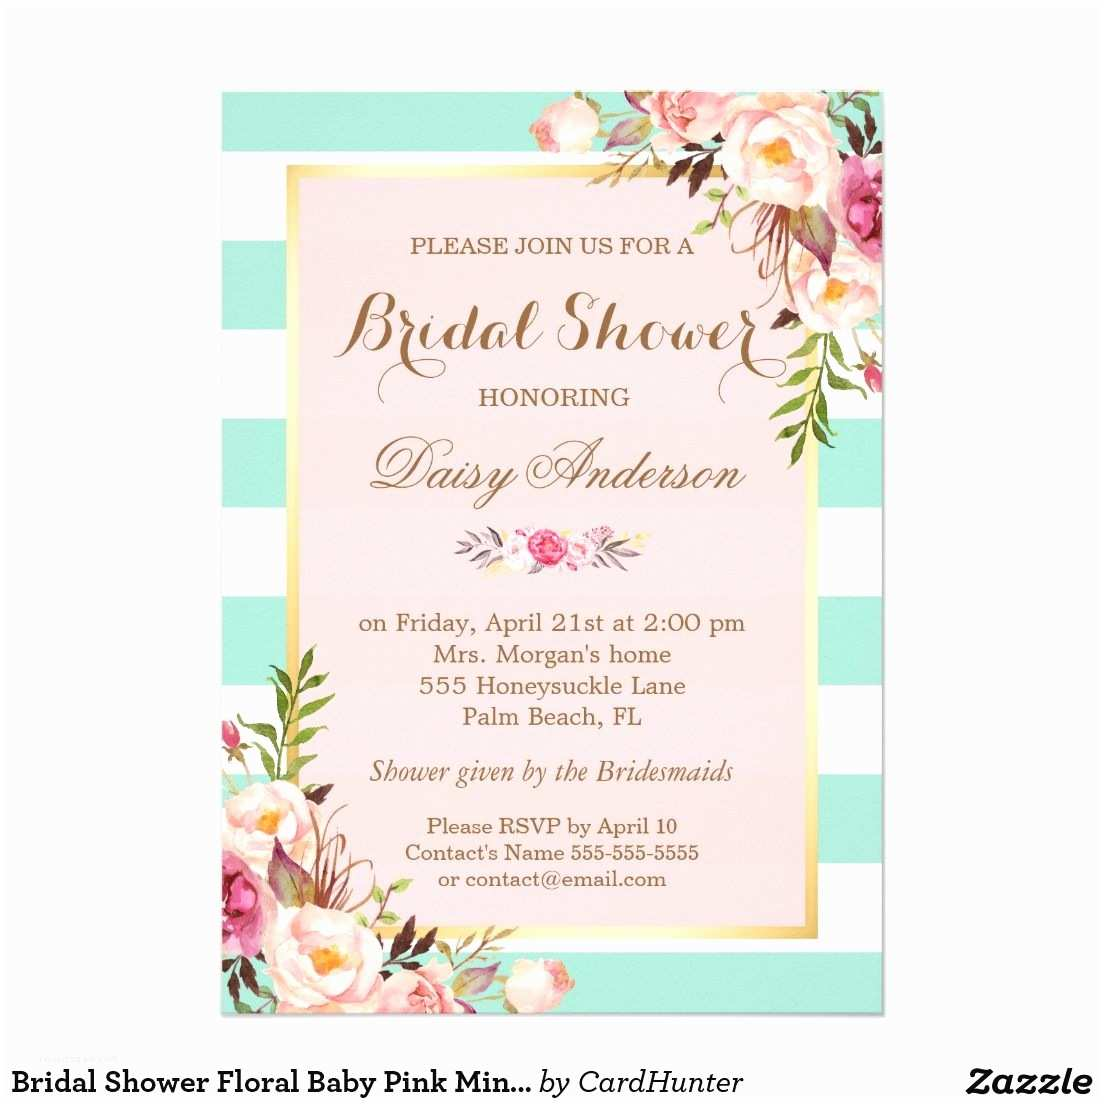 Minted Wedding Shower Invitations Bridal Shower Floral Baby Pink Mint Green Stripes